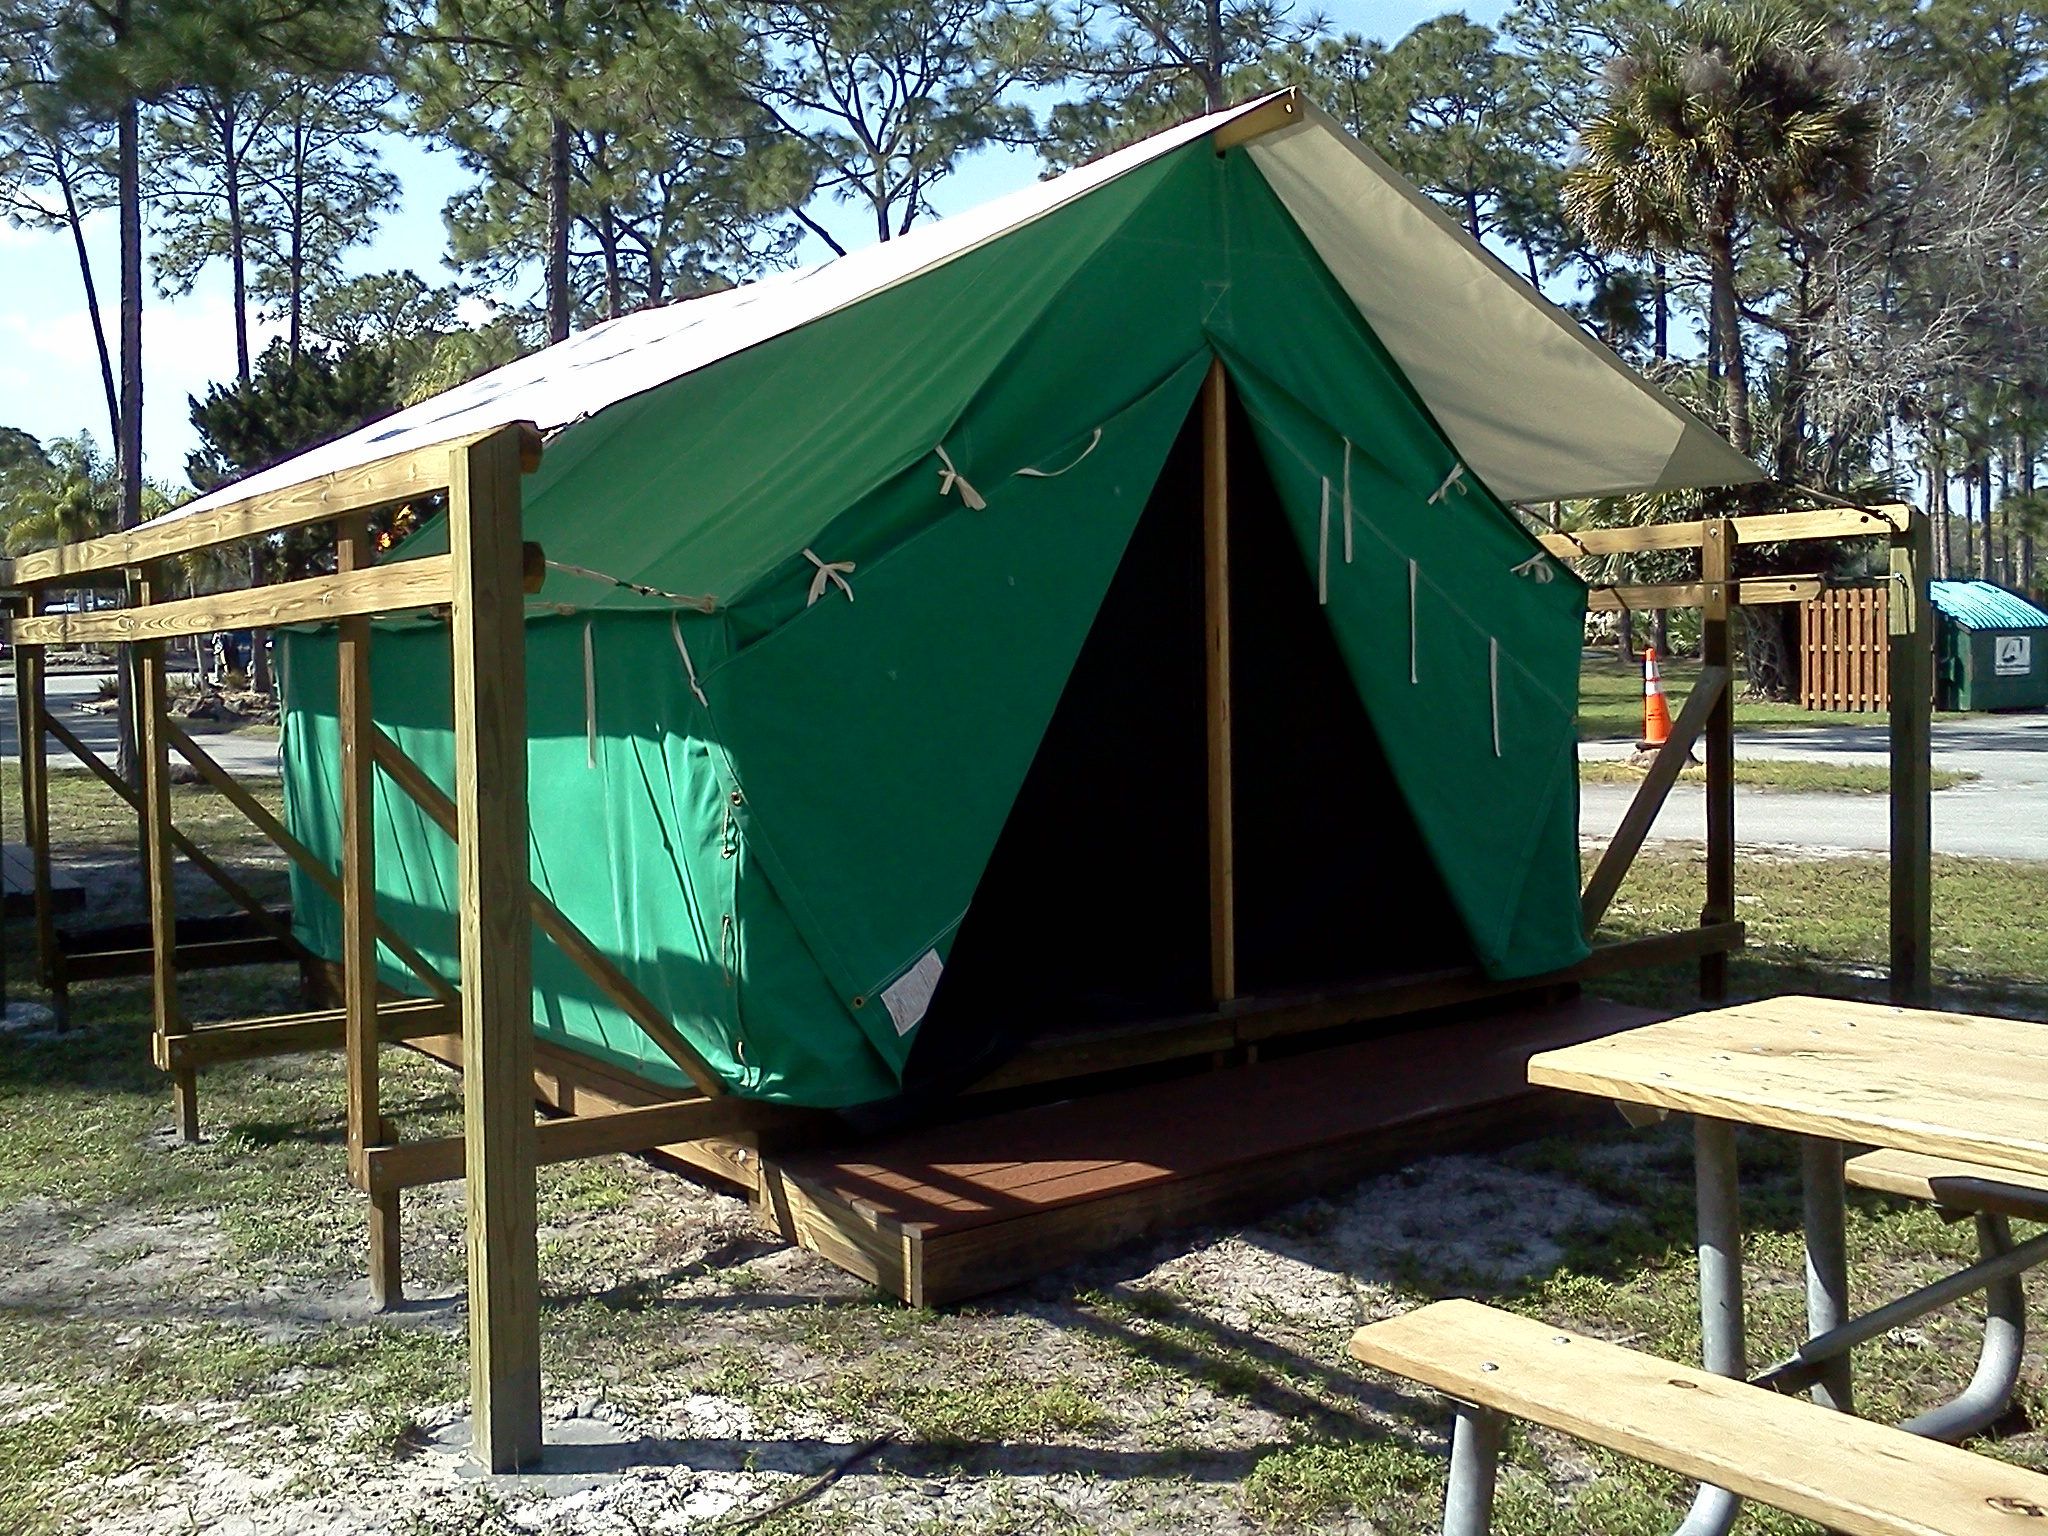 New york camping koa rv parks campgrounds cabins and html for Permanent tent cabins